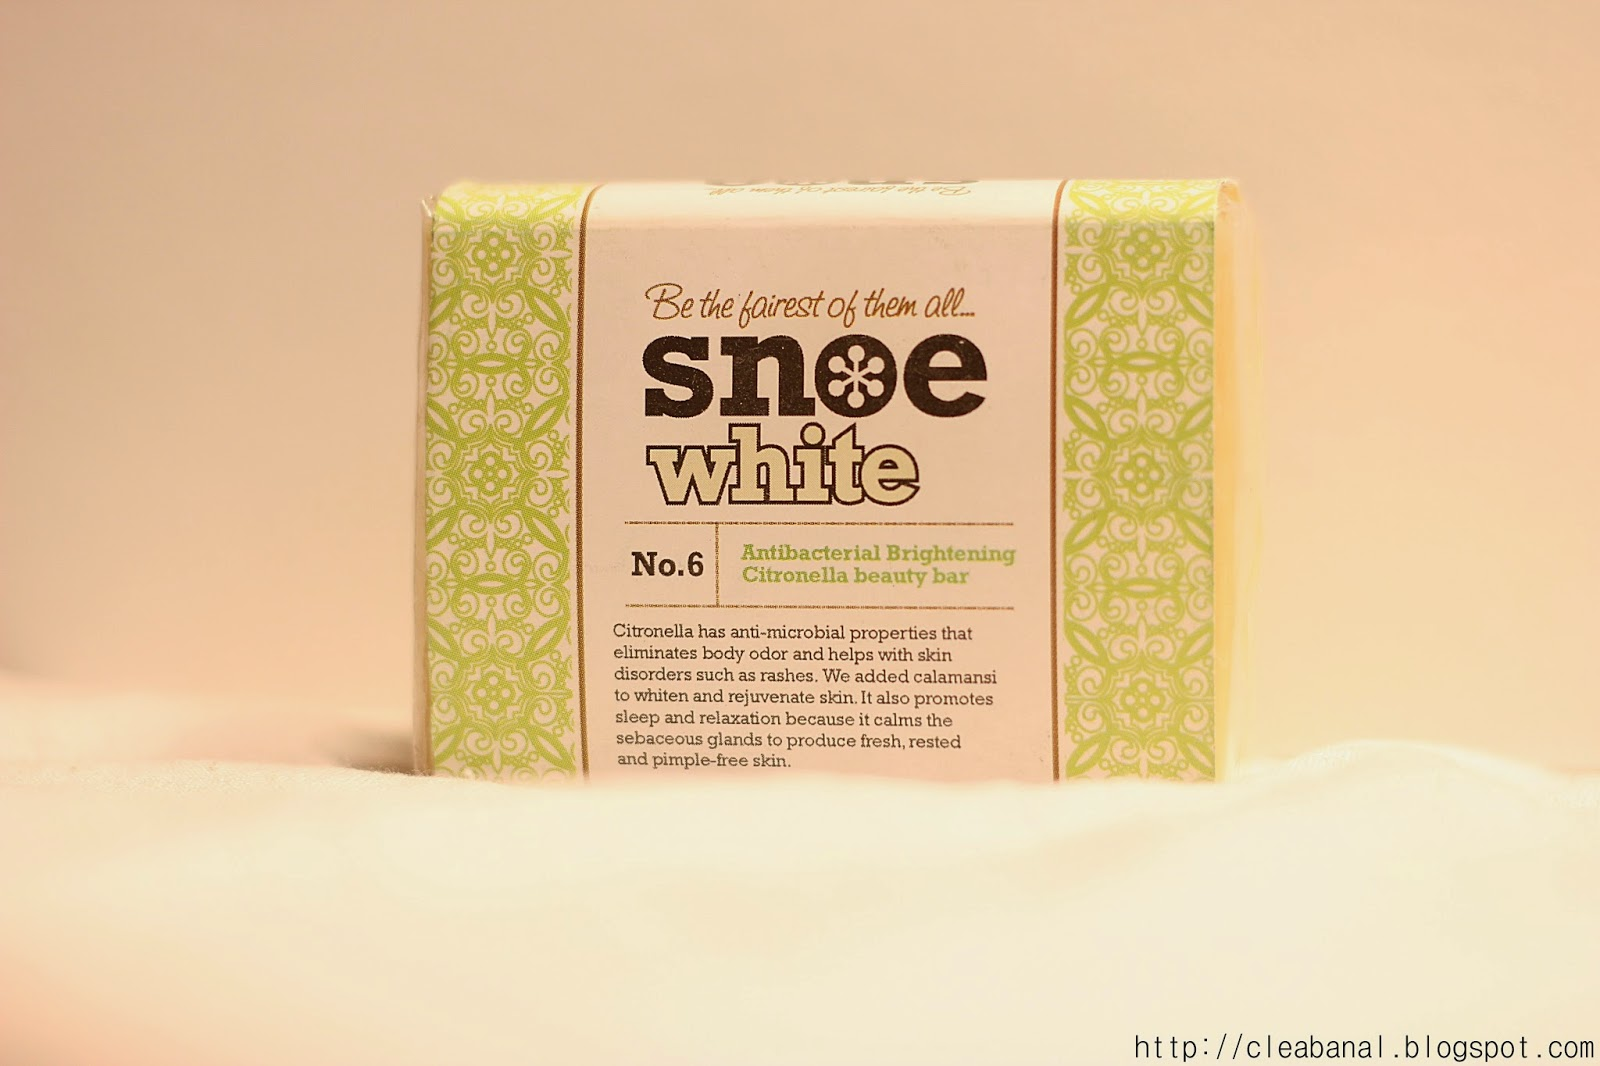 Snoe : #6 Antibacterial Brightening Citronella Beauty Bar Review